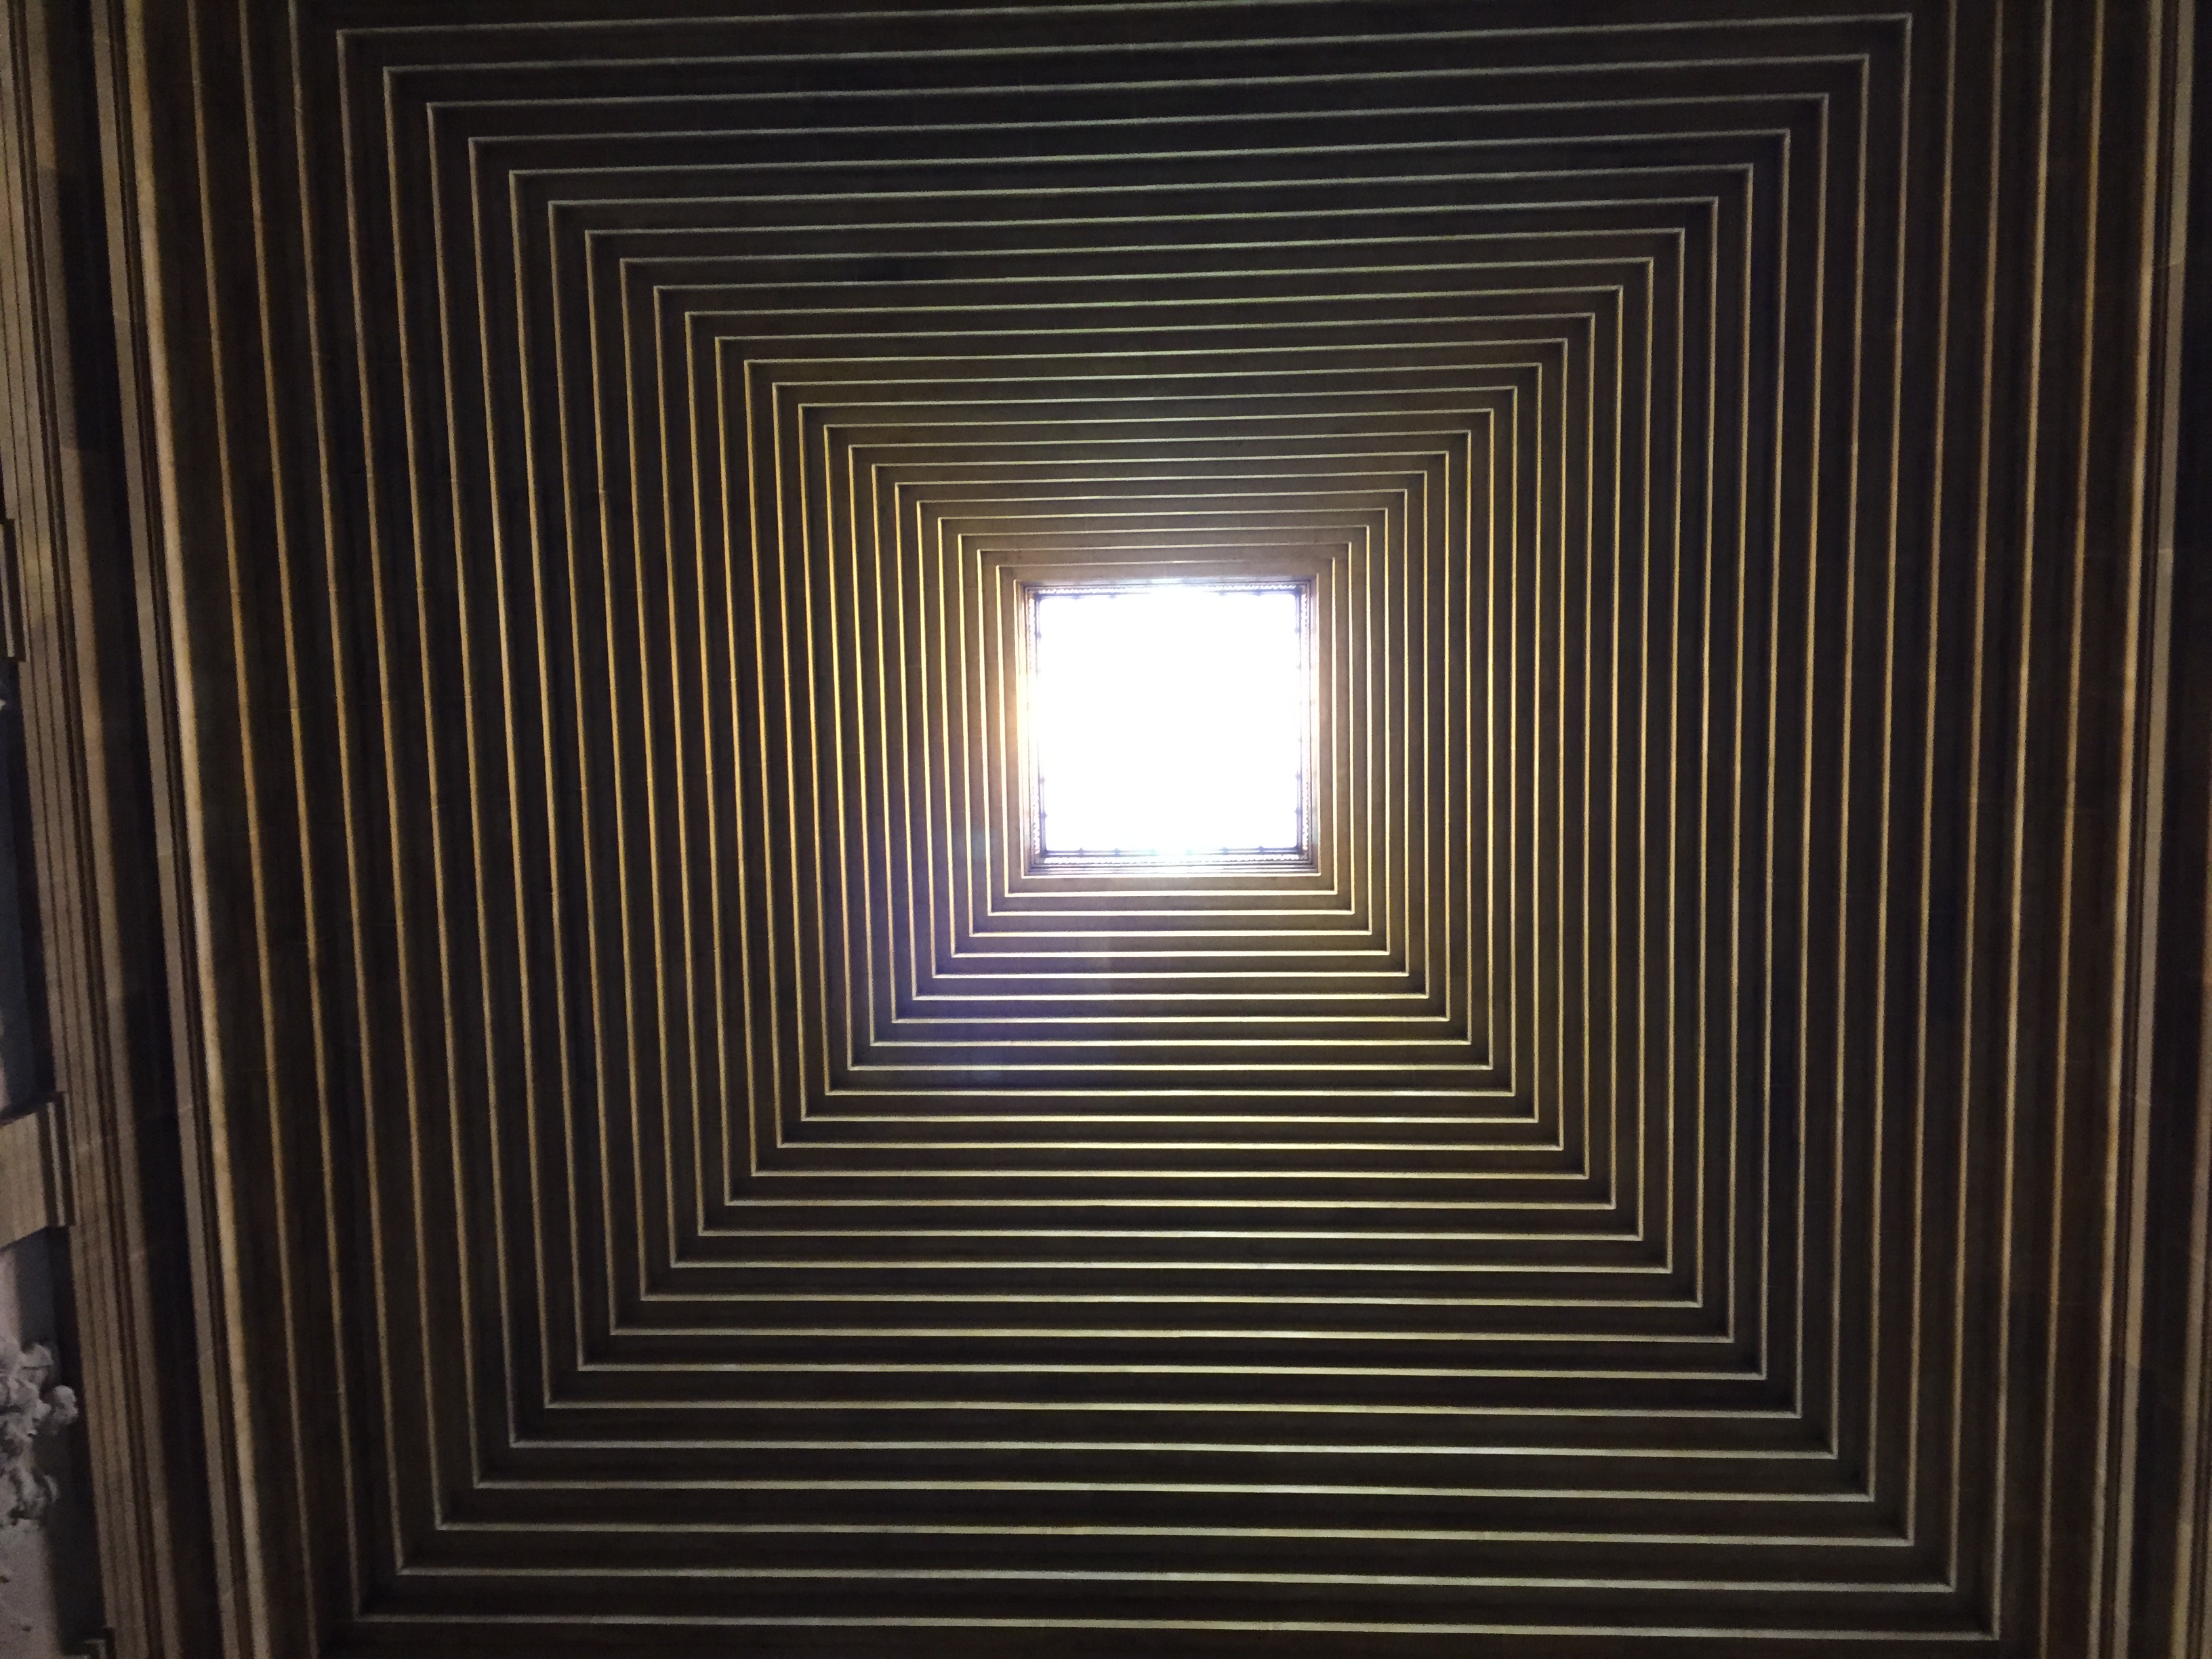 Photo looking up at a pyramid-like ceiling with a square skylight in the middle.